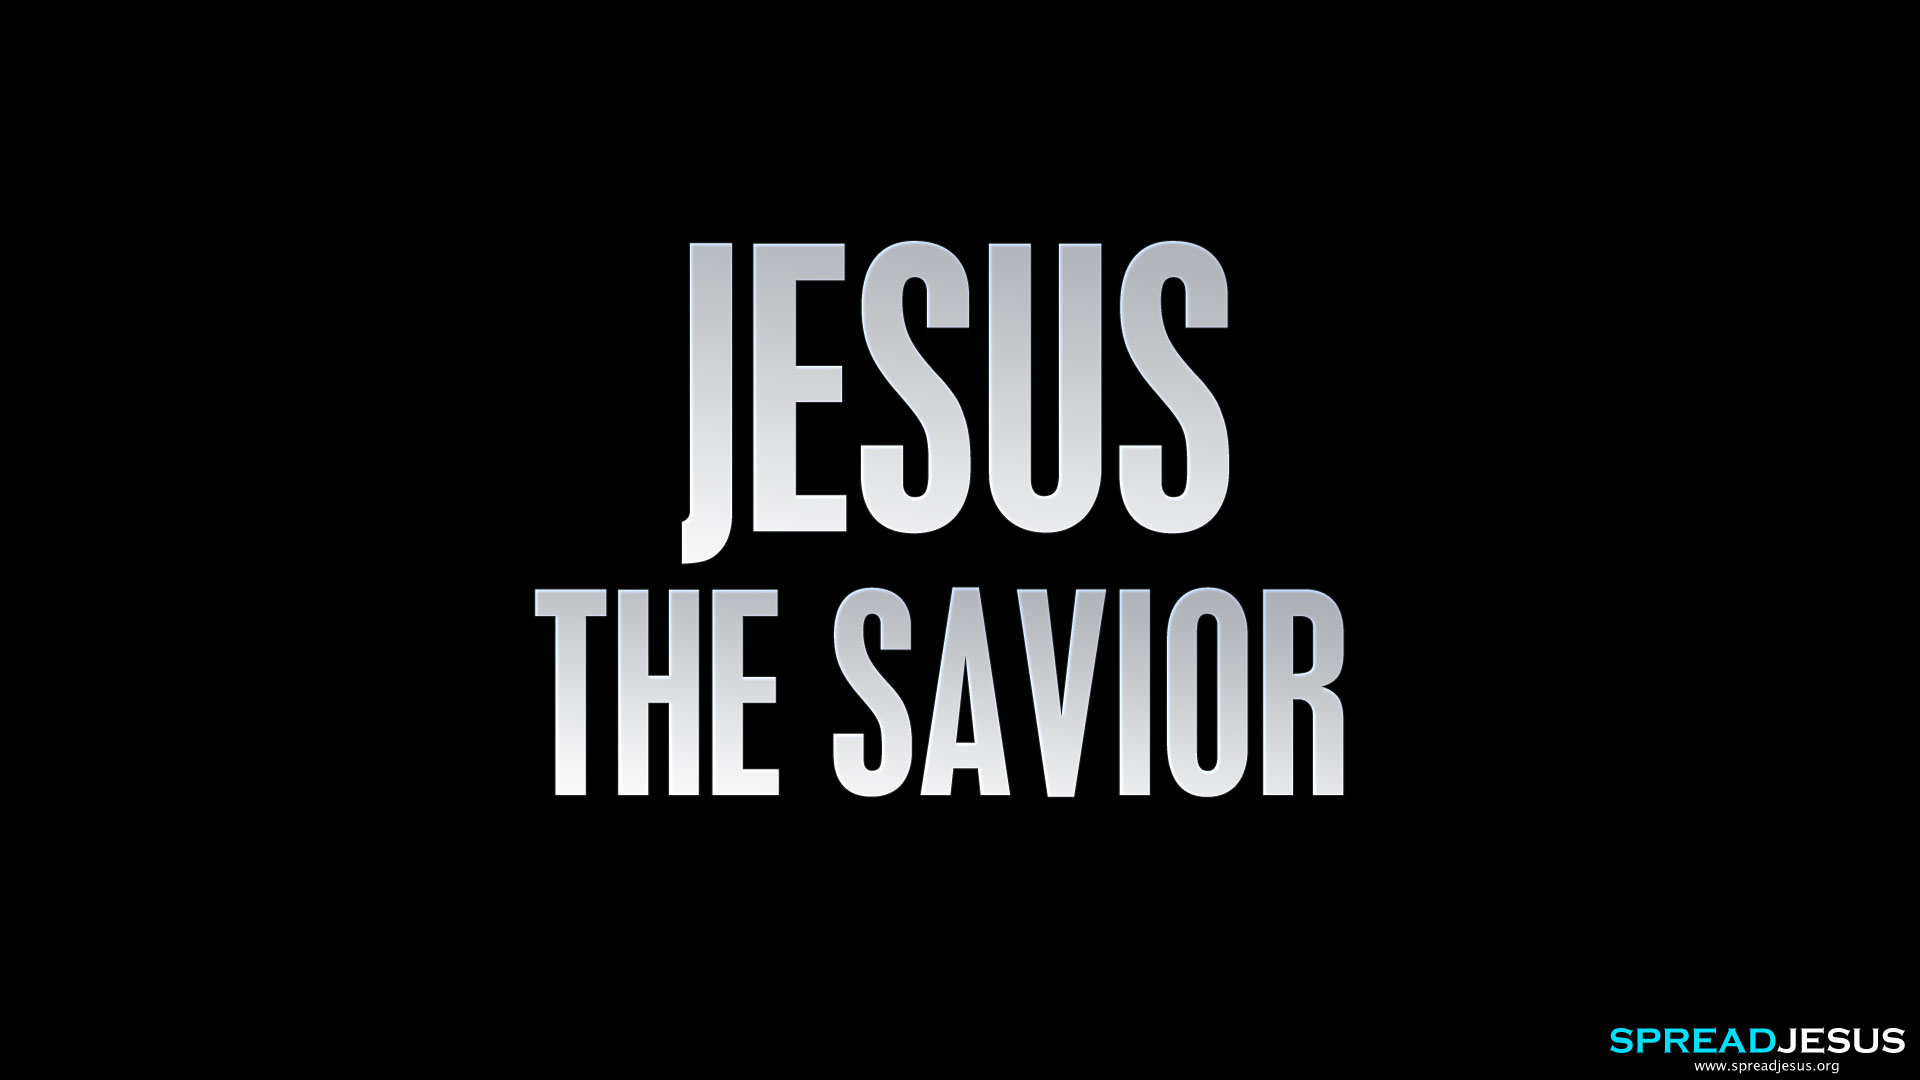 Jesus Christ HD wallpapers free download:Jesus The Savior Jesus Christ HD wallpaper 9 free download:Jesus christ Backgrounds ,christian backgrounds wallpapers HD